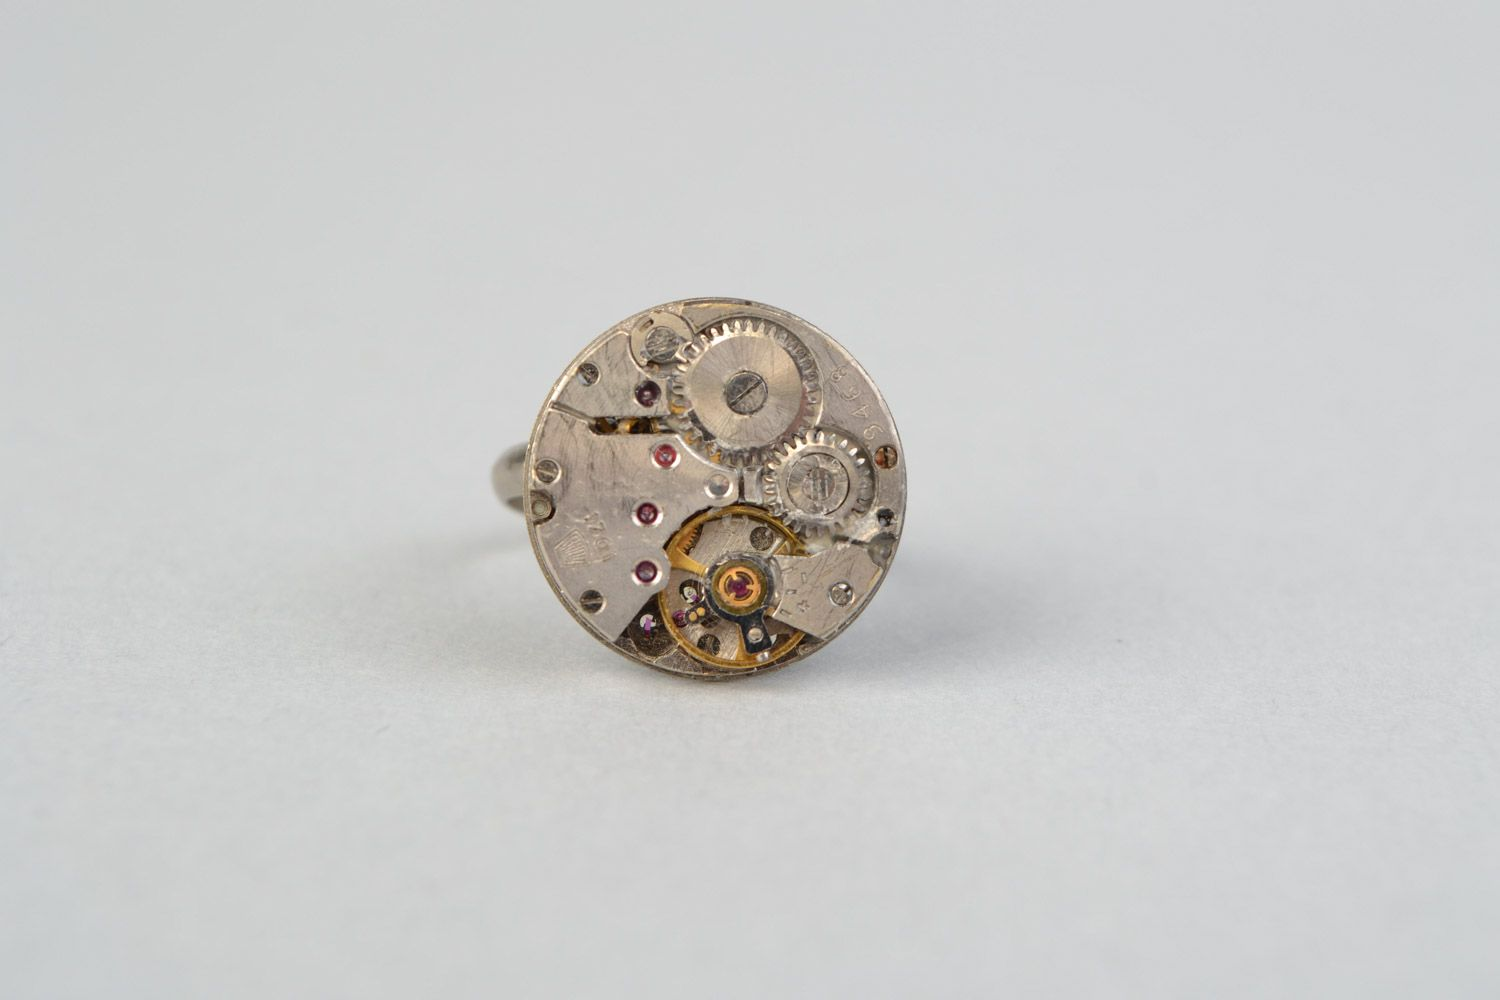 watches Handmade small round women's seal ring with clock mechanism in steampunk style - MADEheart.com